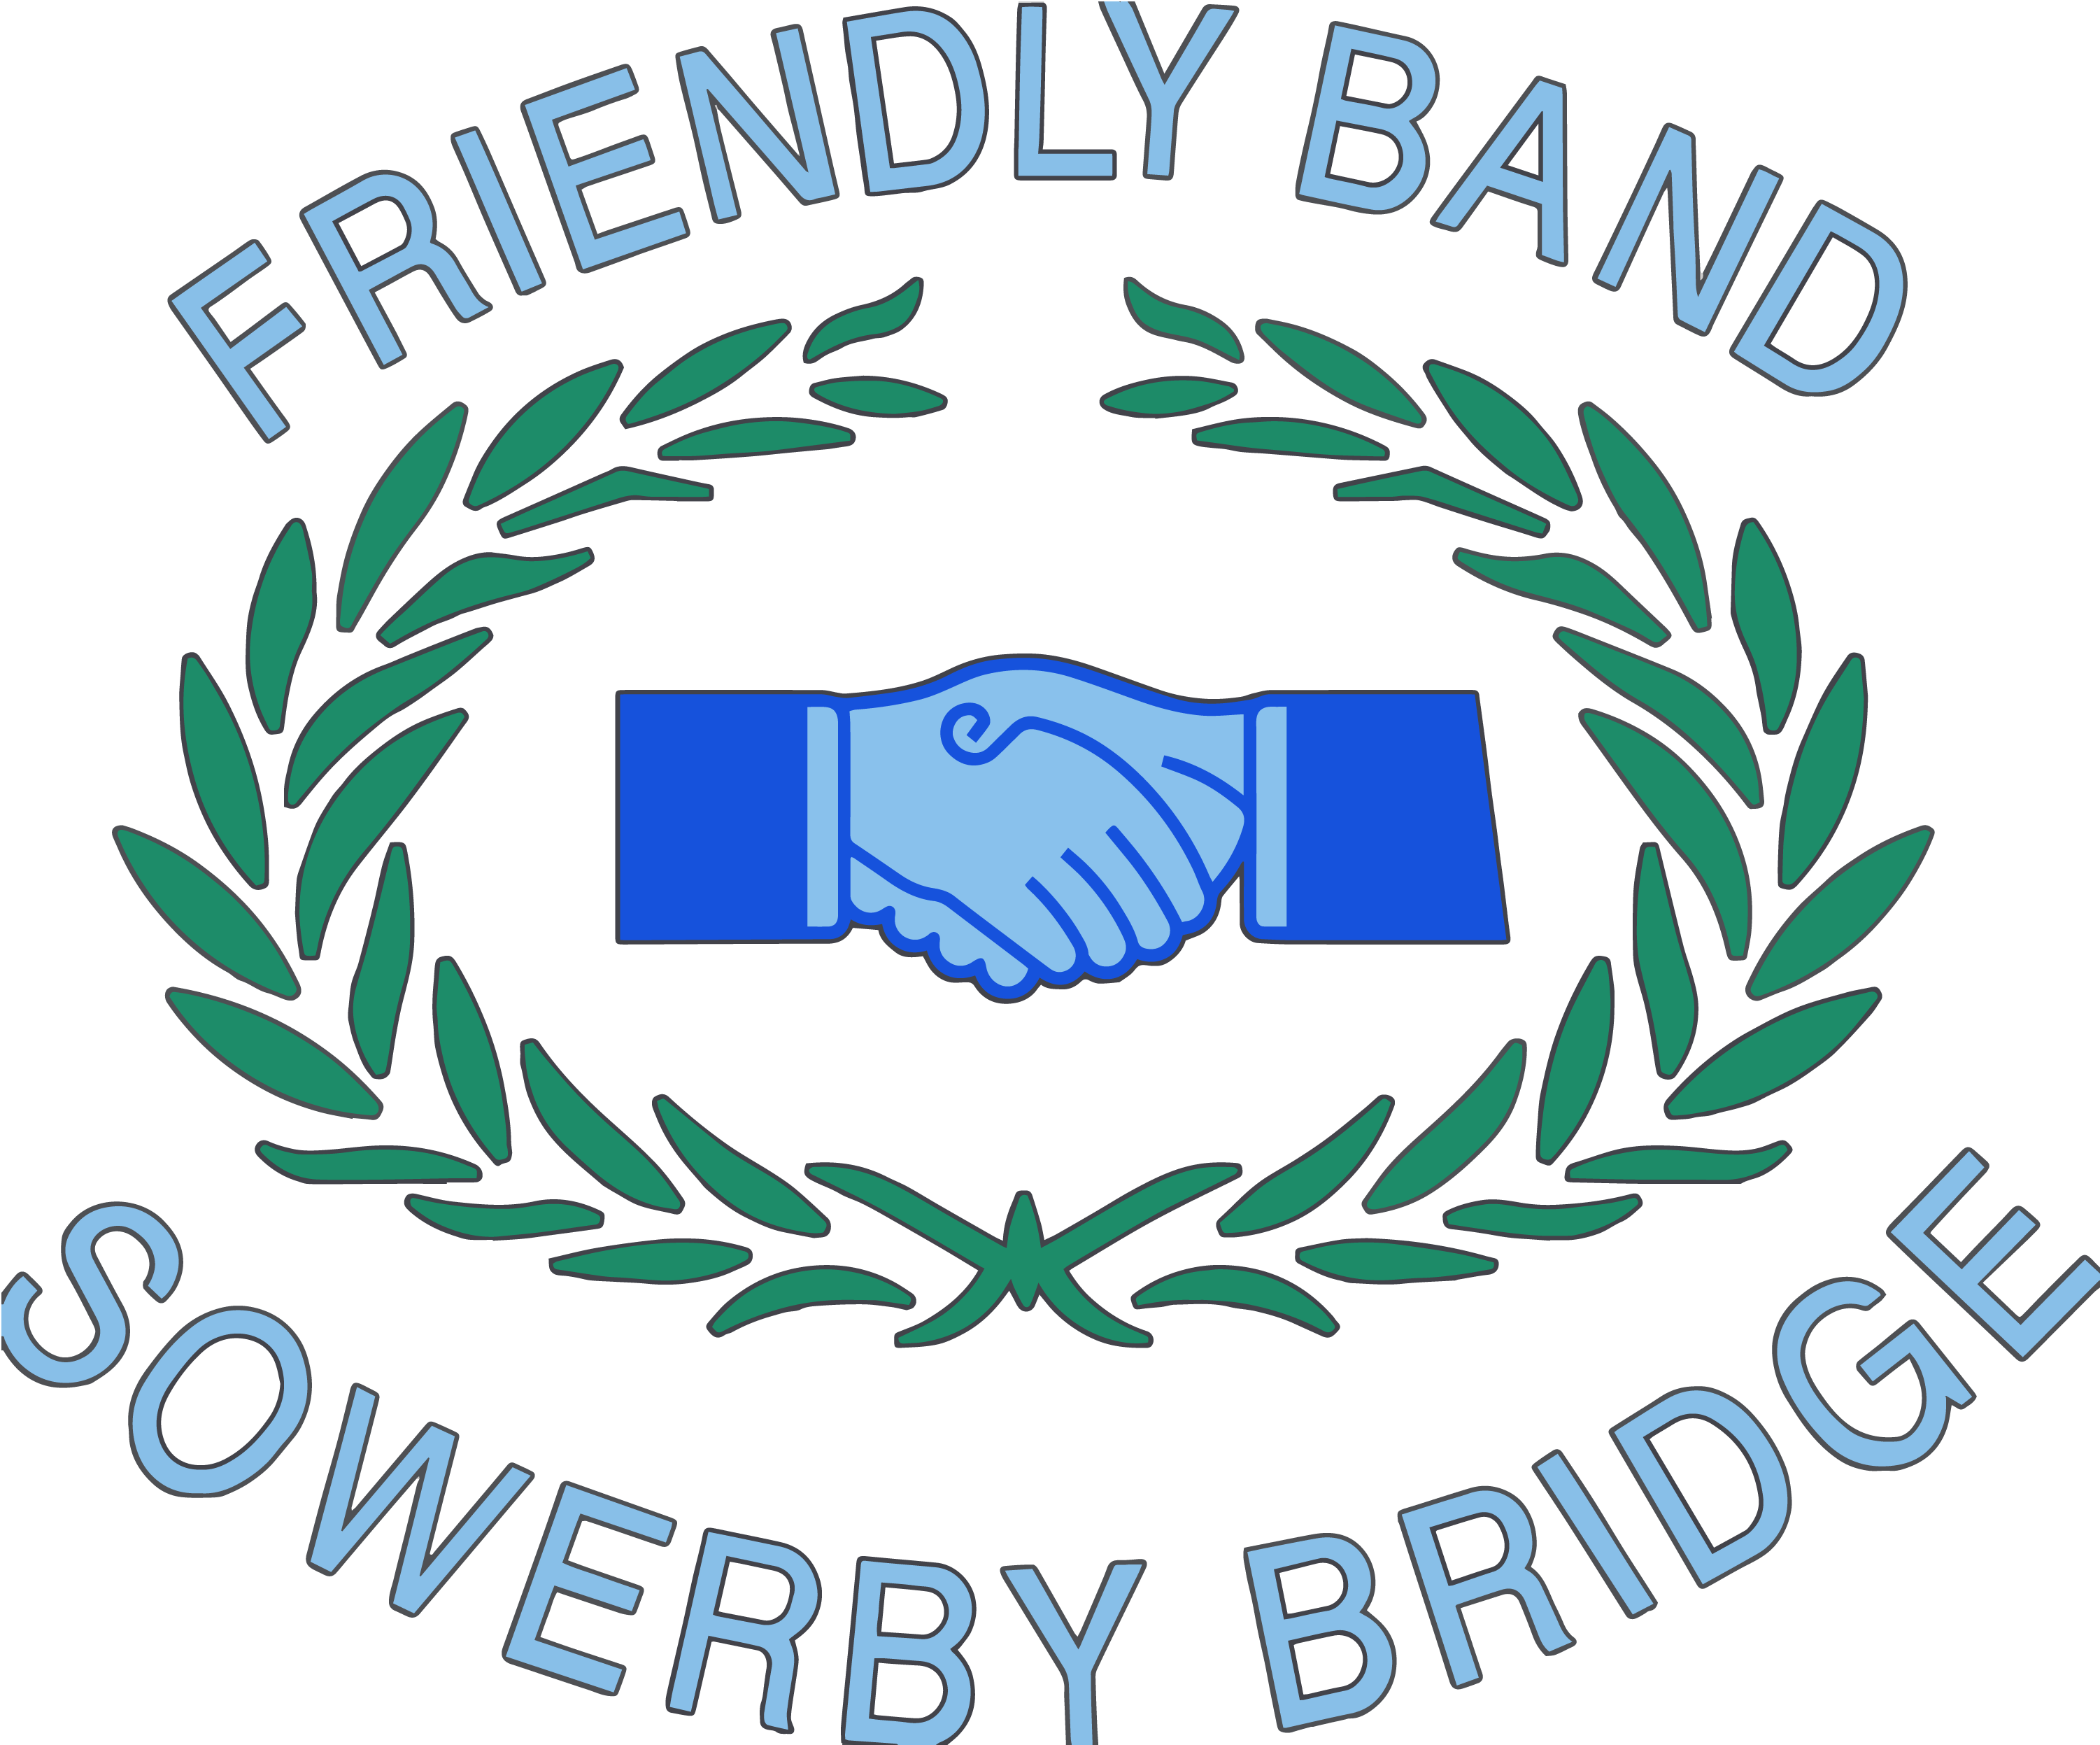 Friendly Band